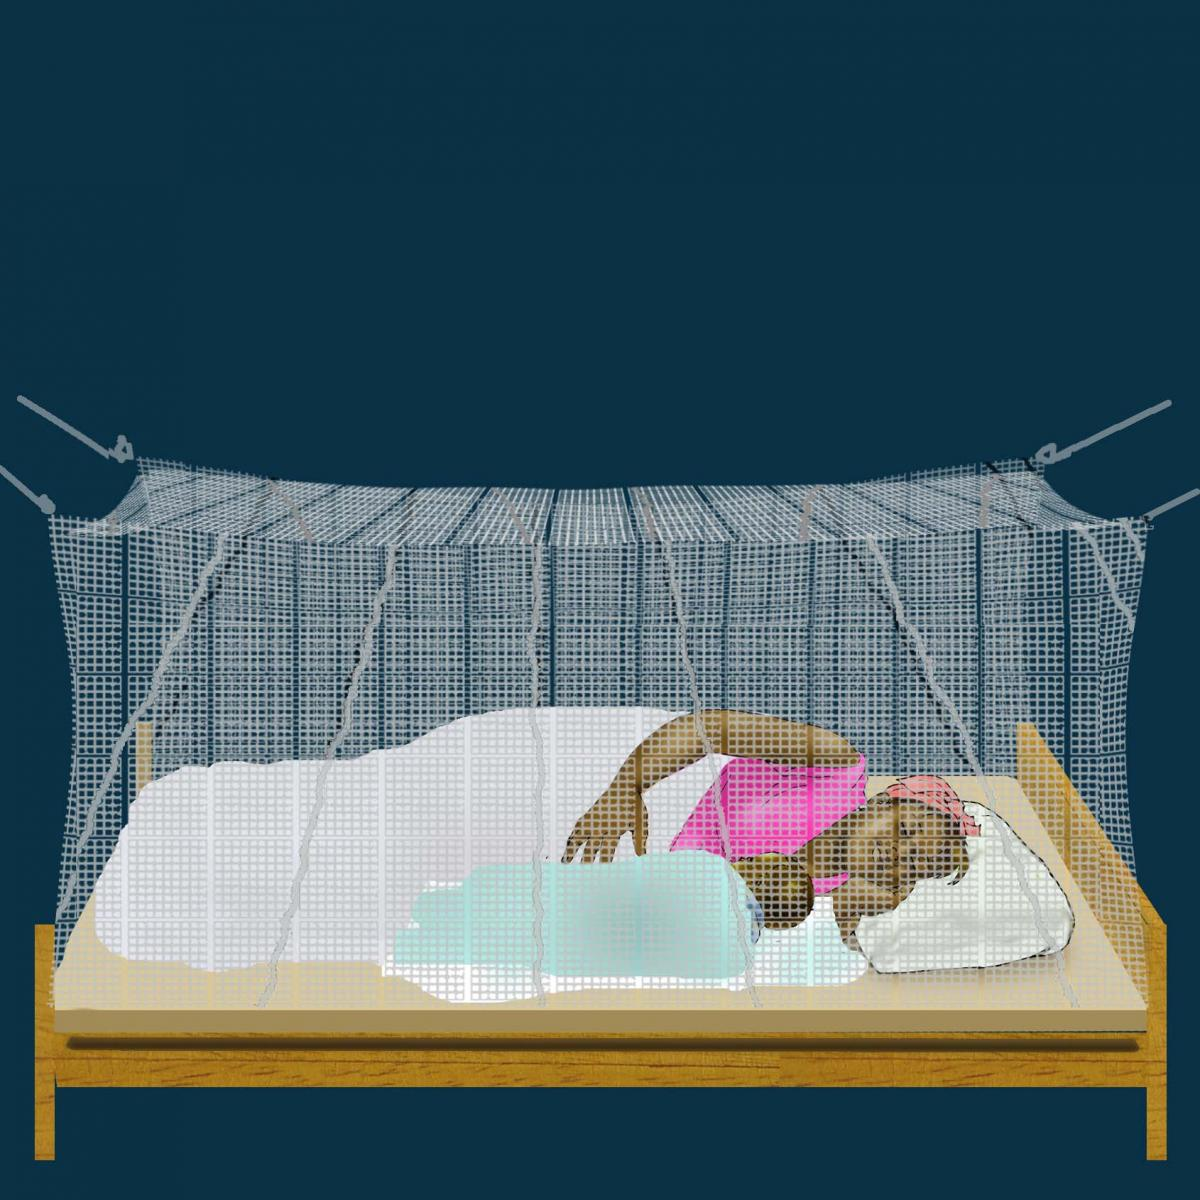 Malaria - Mother sleeping with infant under mosquito net - 02 - Unknown